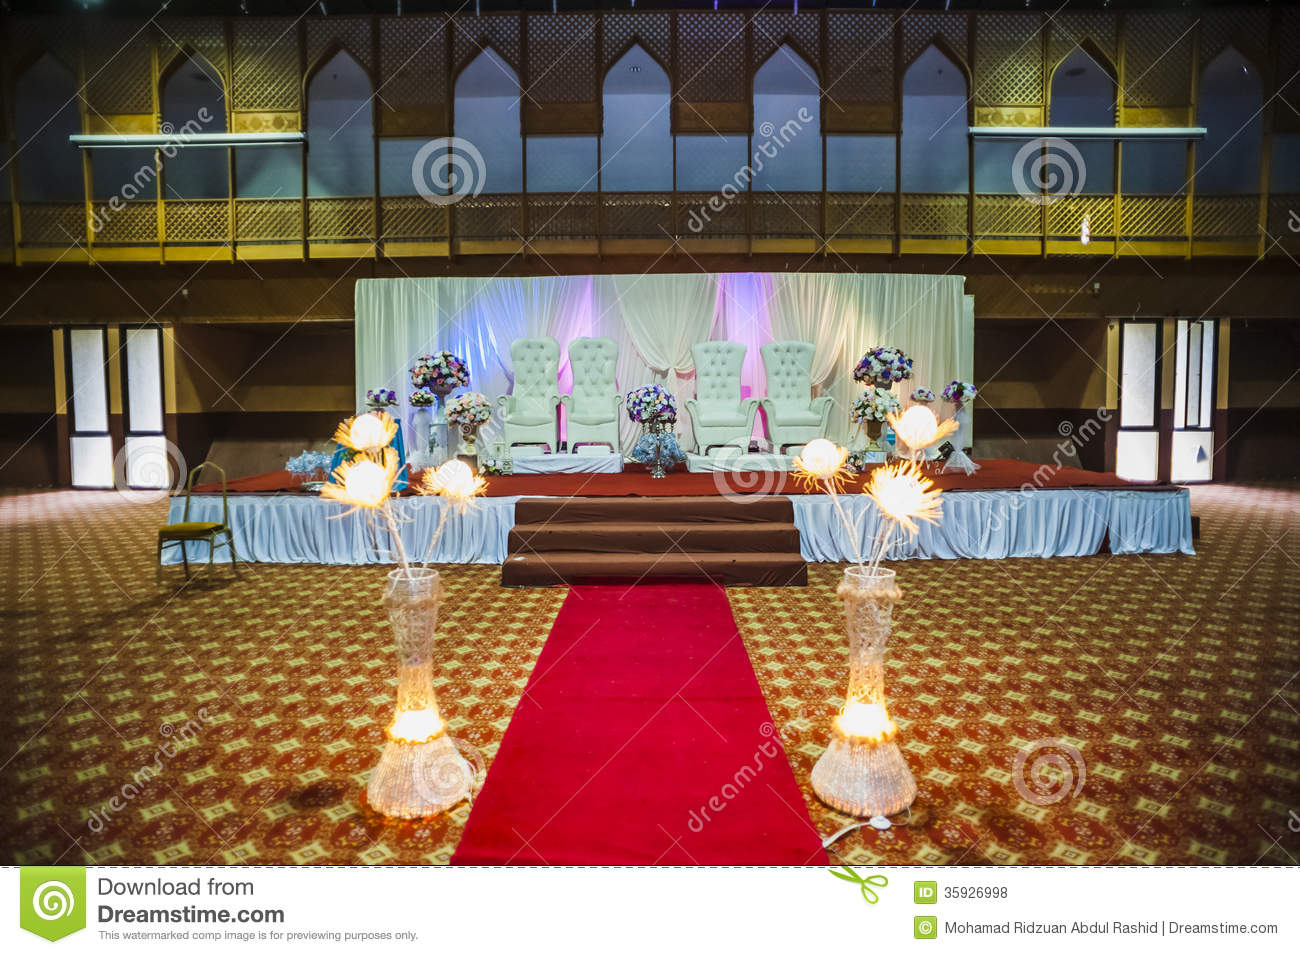 Wedding hall decoration royalty free stock photos image for Hall decoration images